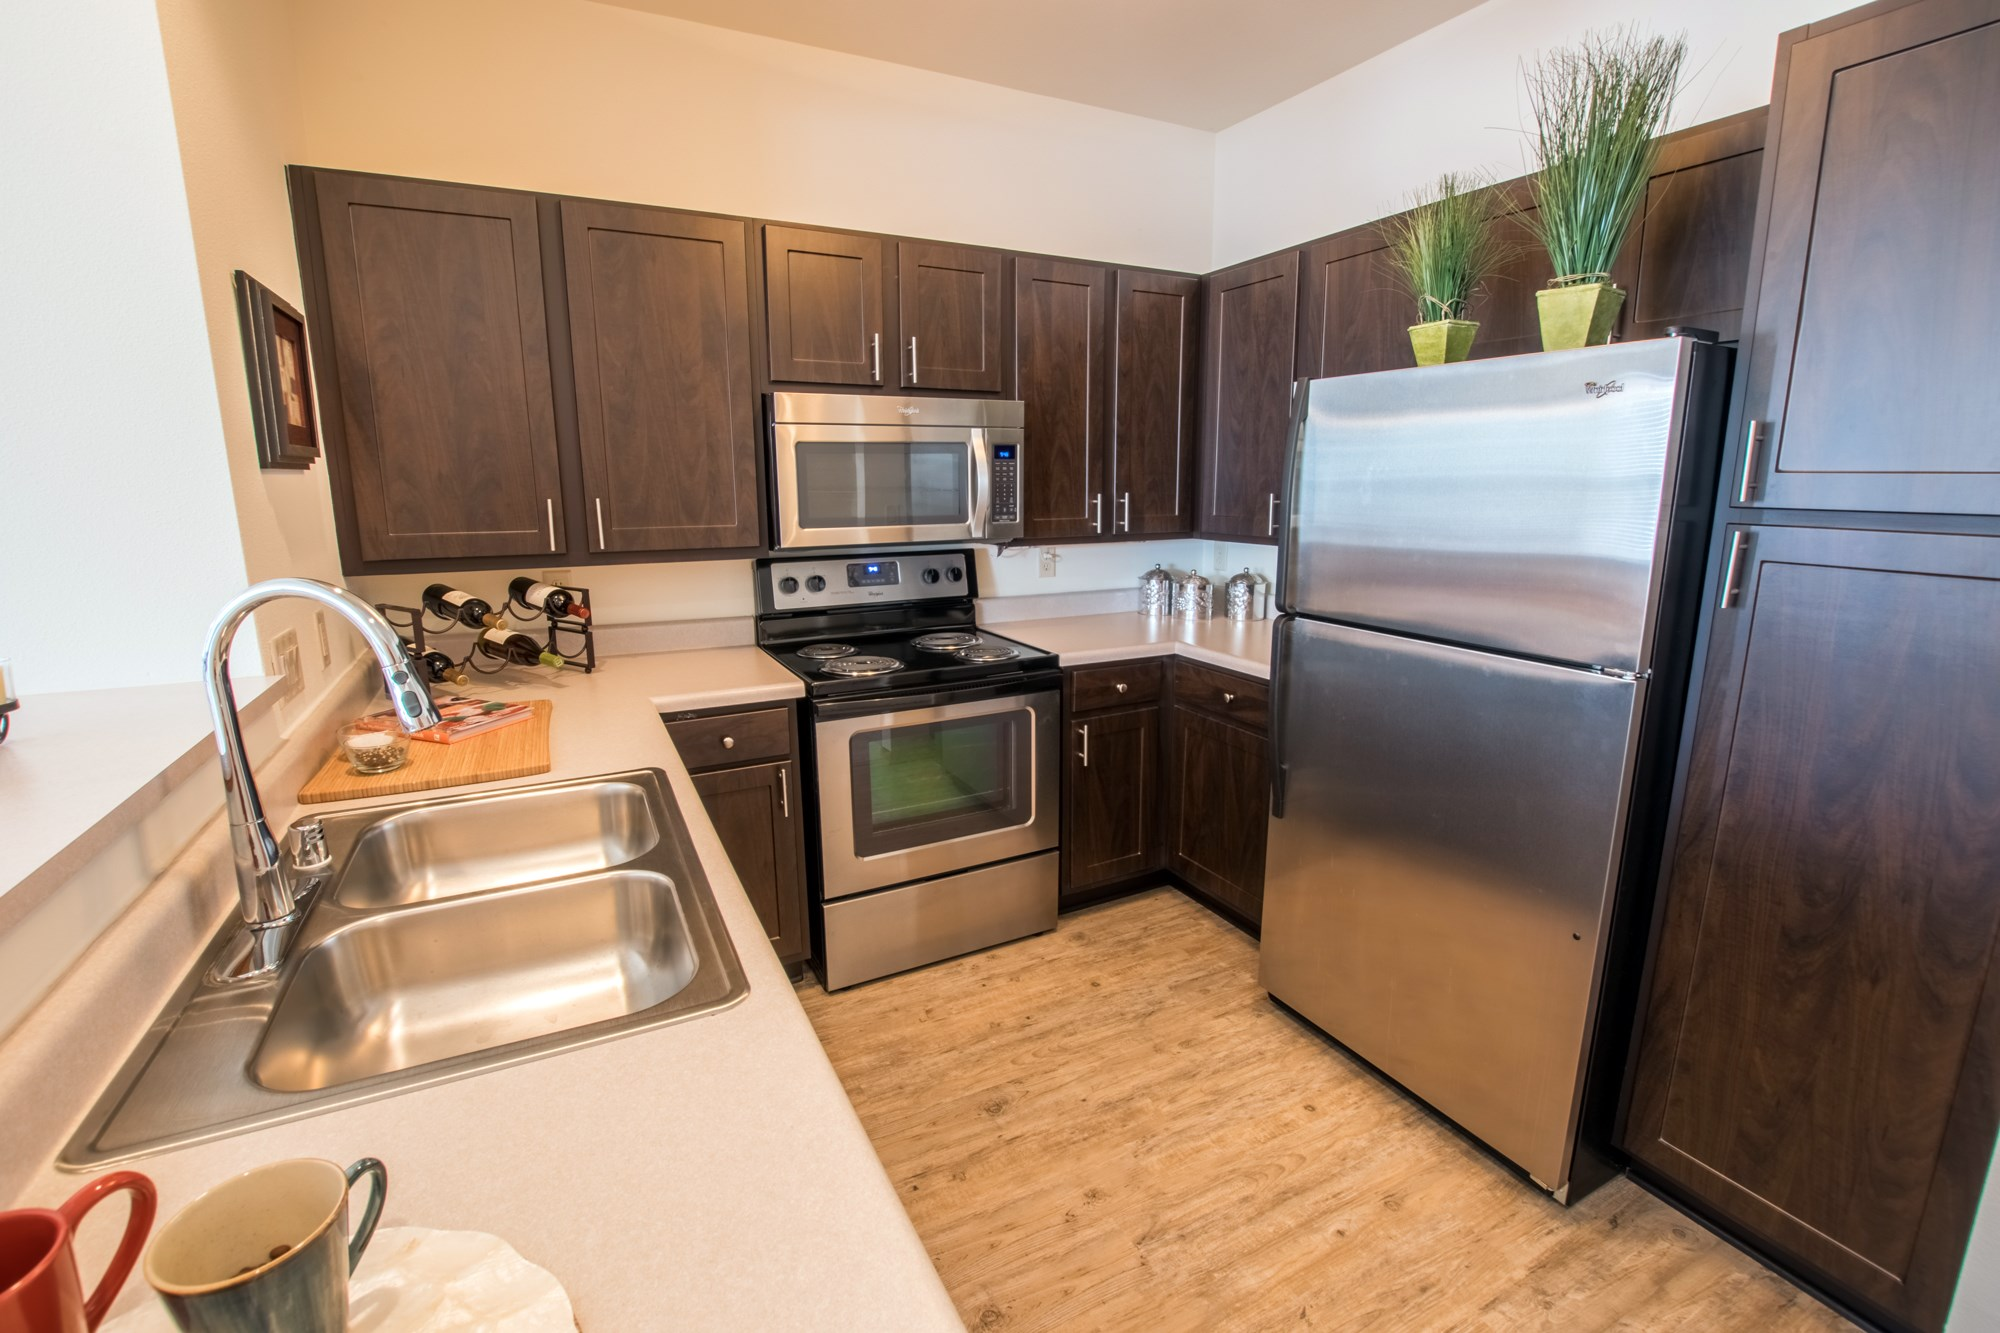 Kitchen at Norhardt Crossing Apartments in Brookfield, WI